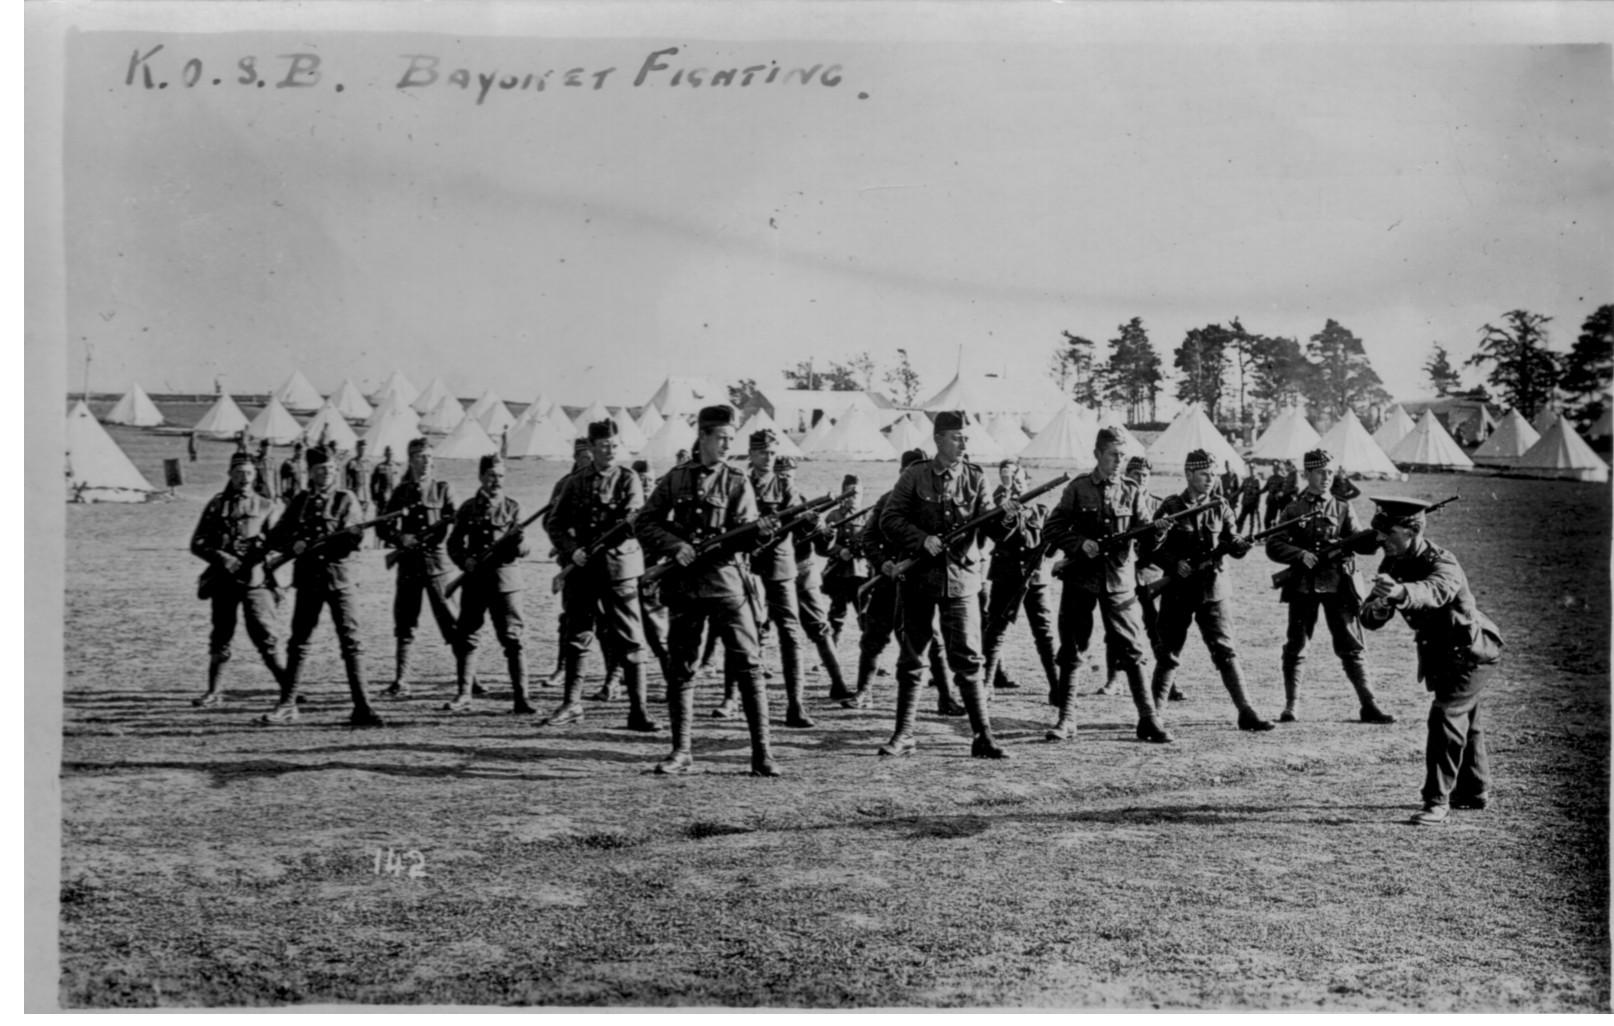 Bayonet; Training; King's Own Scottish Borderers; KOSB; Soldiers; 1915; First World War